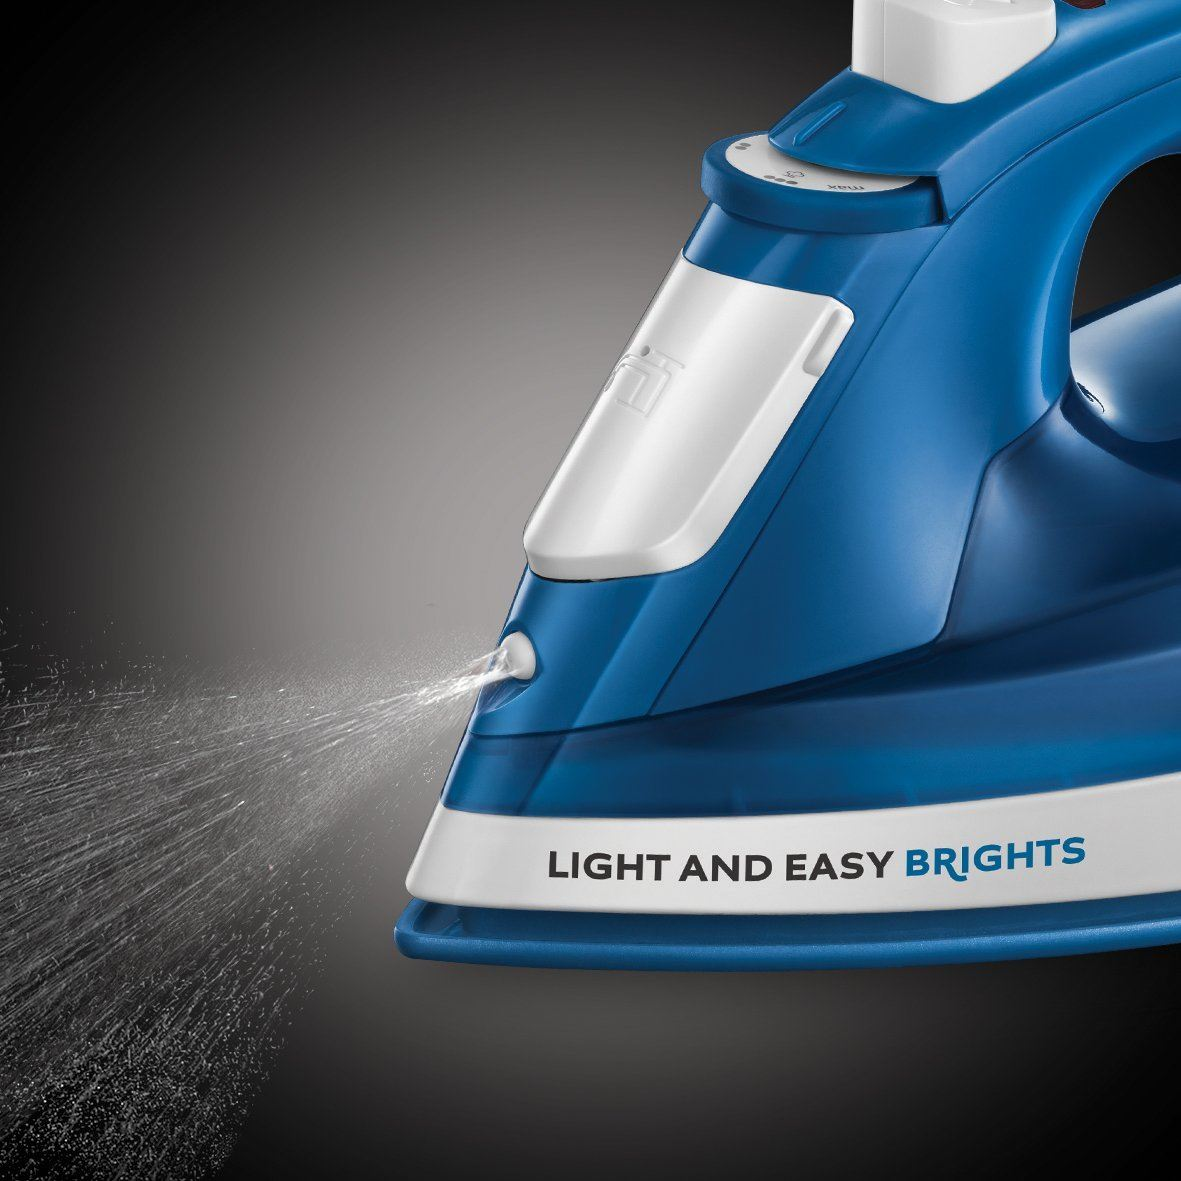 Russell-Hobbs-24840-Light-amp-Easy-Brights-Steam-Iron-with-Ceramic-Soleplate-2400W thumbnail 29